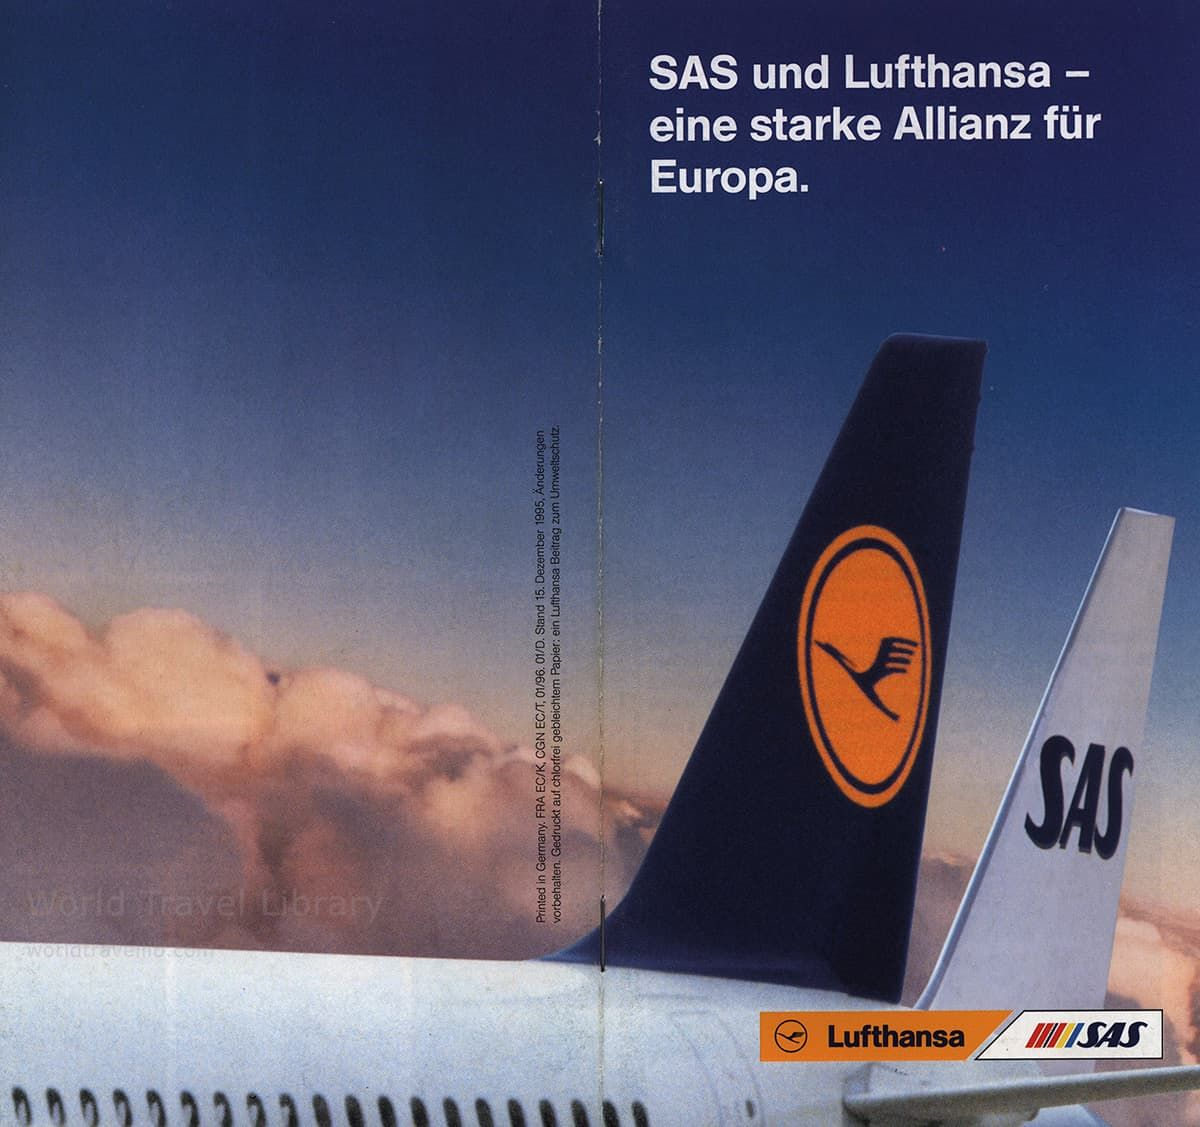 Pin By Mtay On Sas Scandinavian Airlines In 2020 Airlines Sas Scandinavian